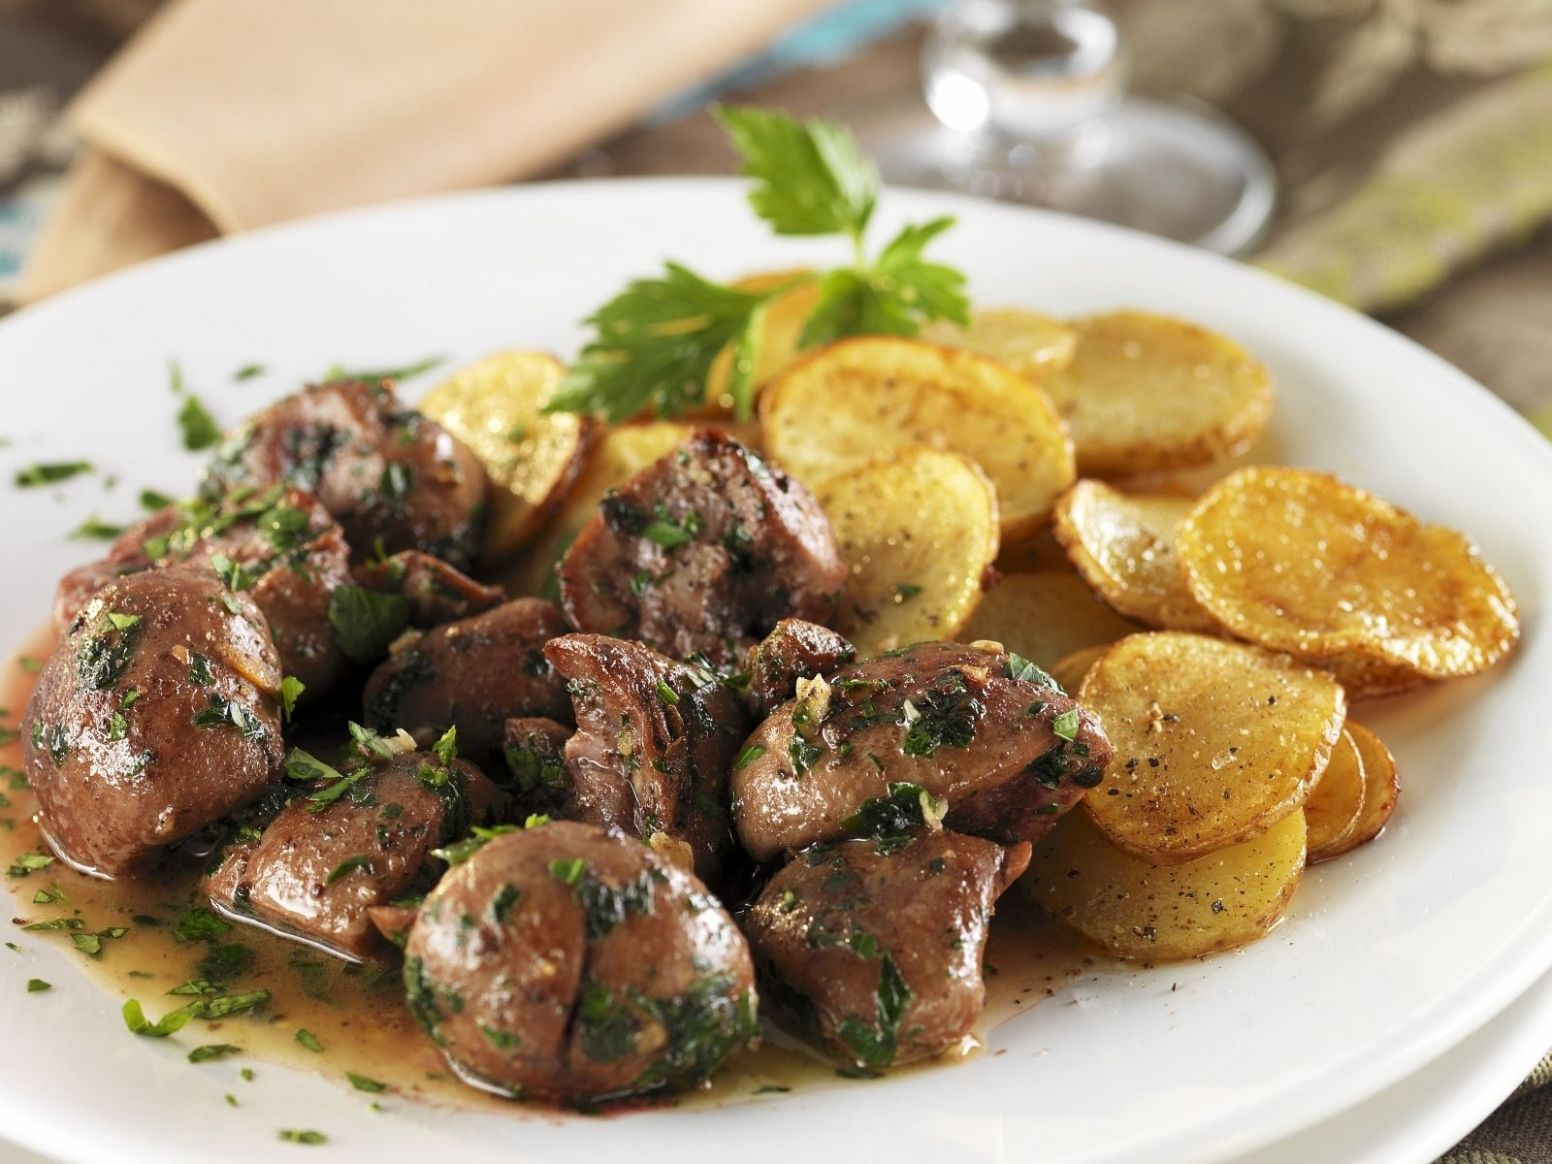 Braised Pork Kidney with Fried Potatoes